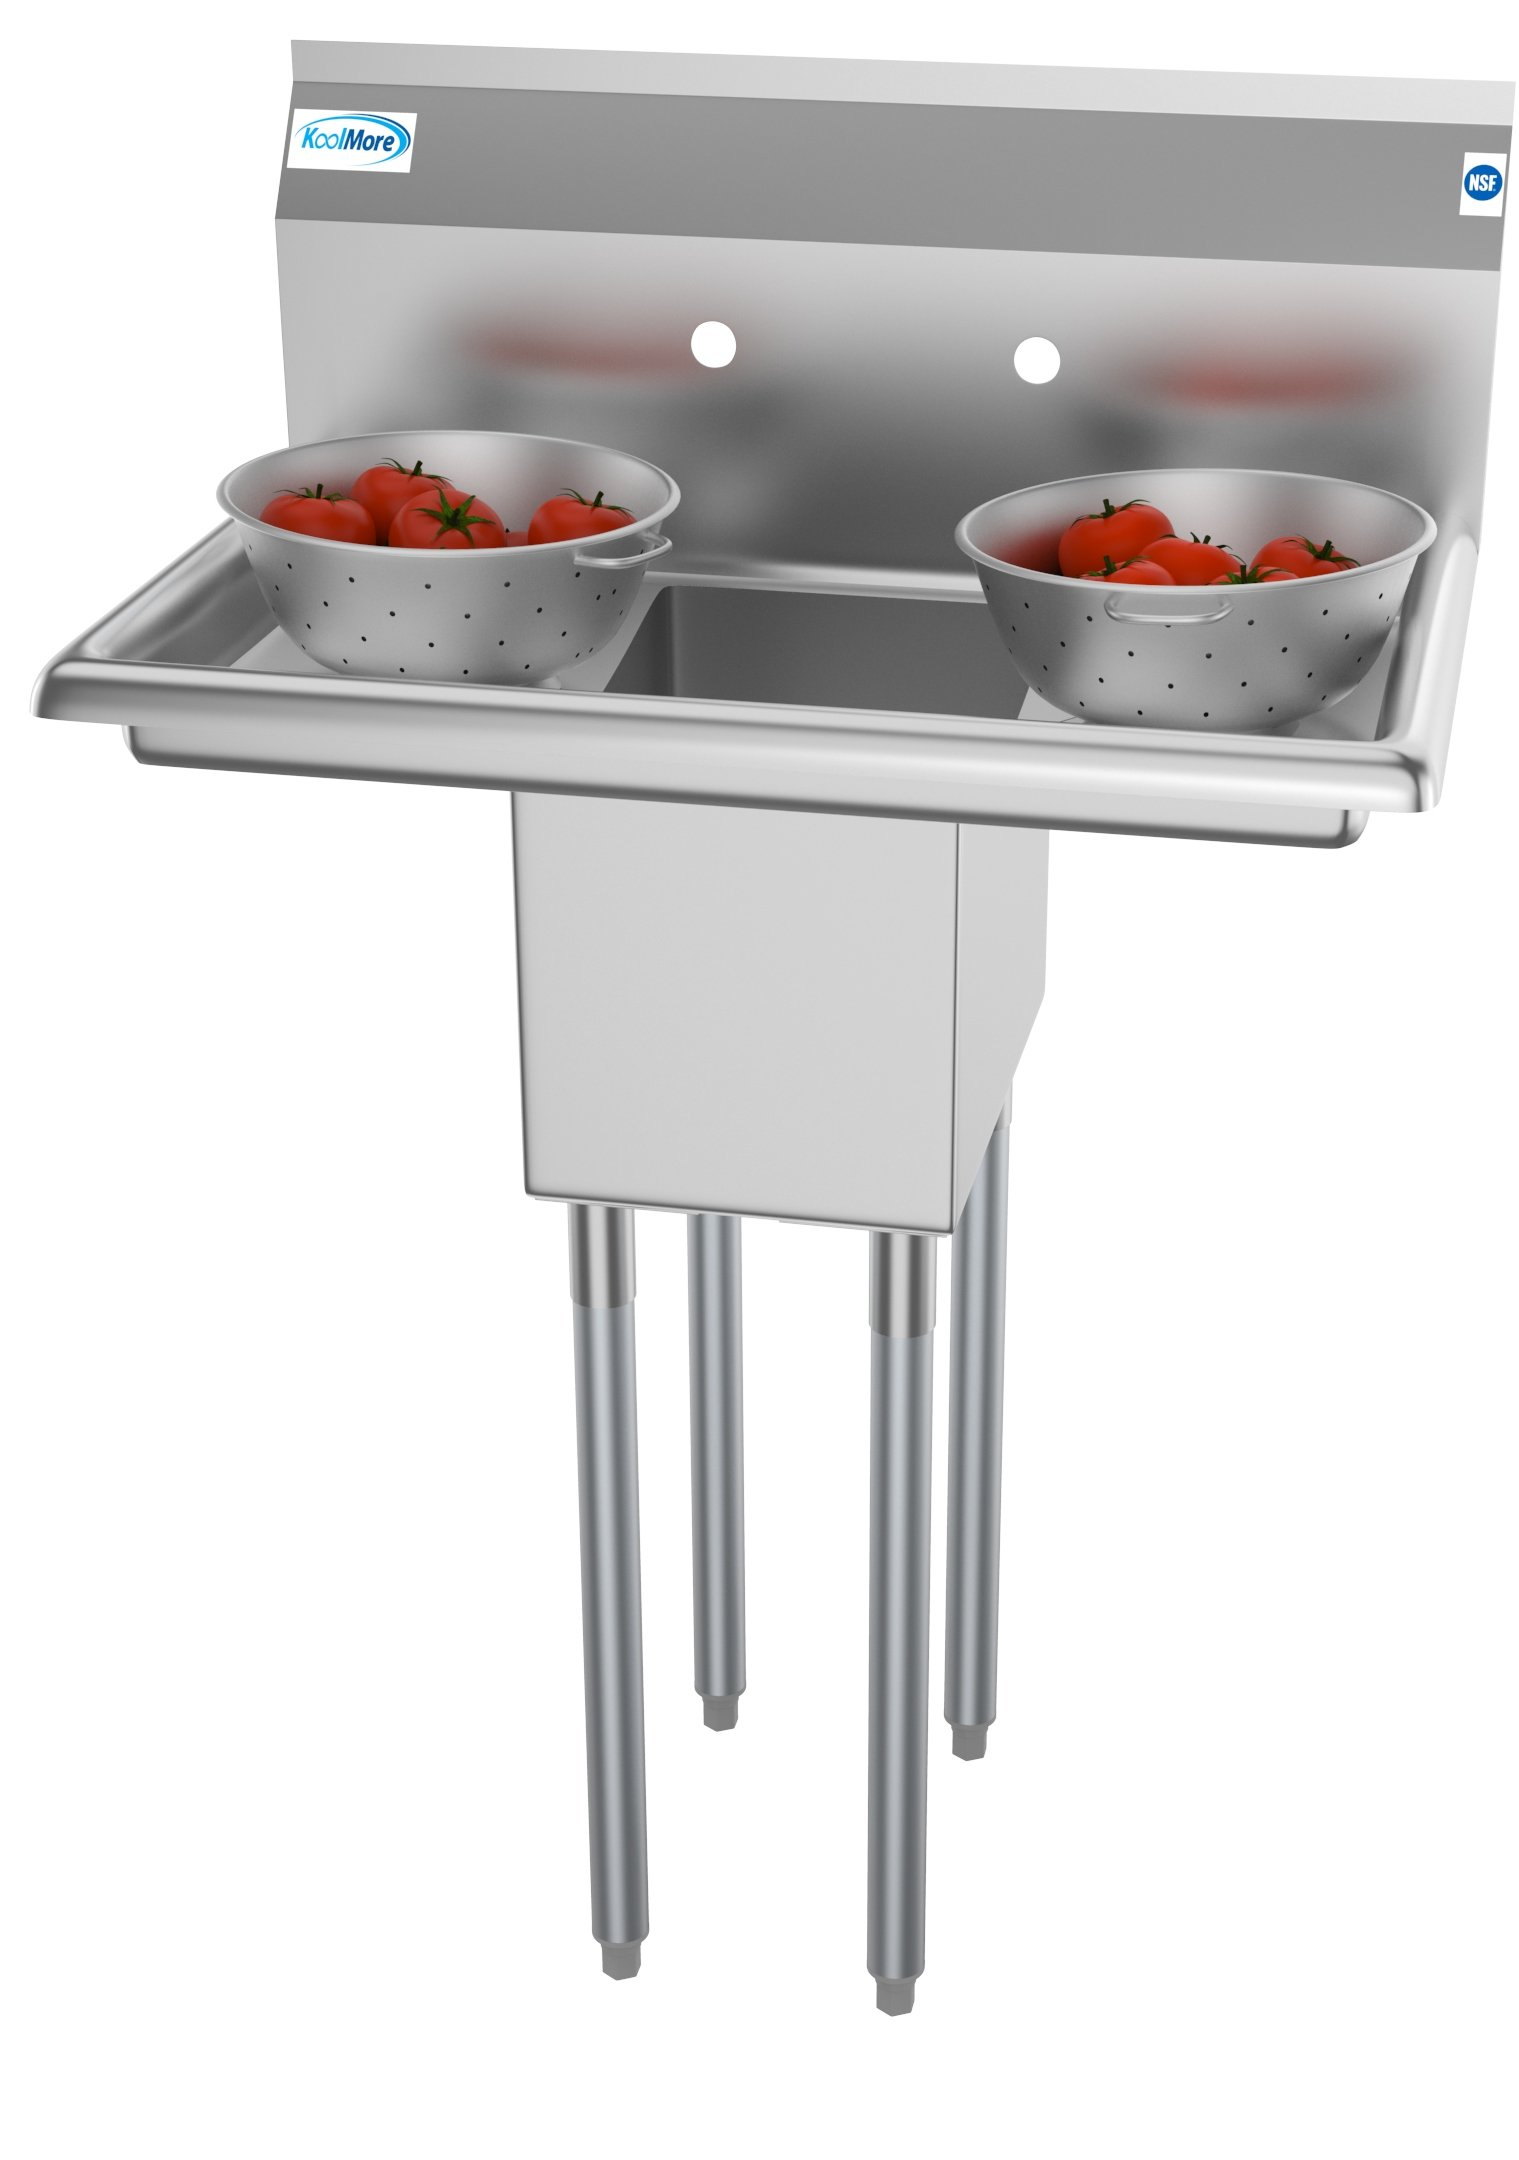 1 compartment 30 stainless steel commercial kitchen prep utility sink with 2 drainboards bowl size 10 x 14 x 10